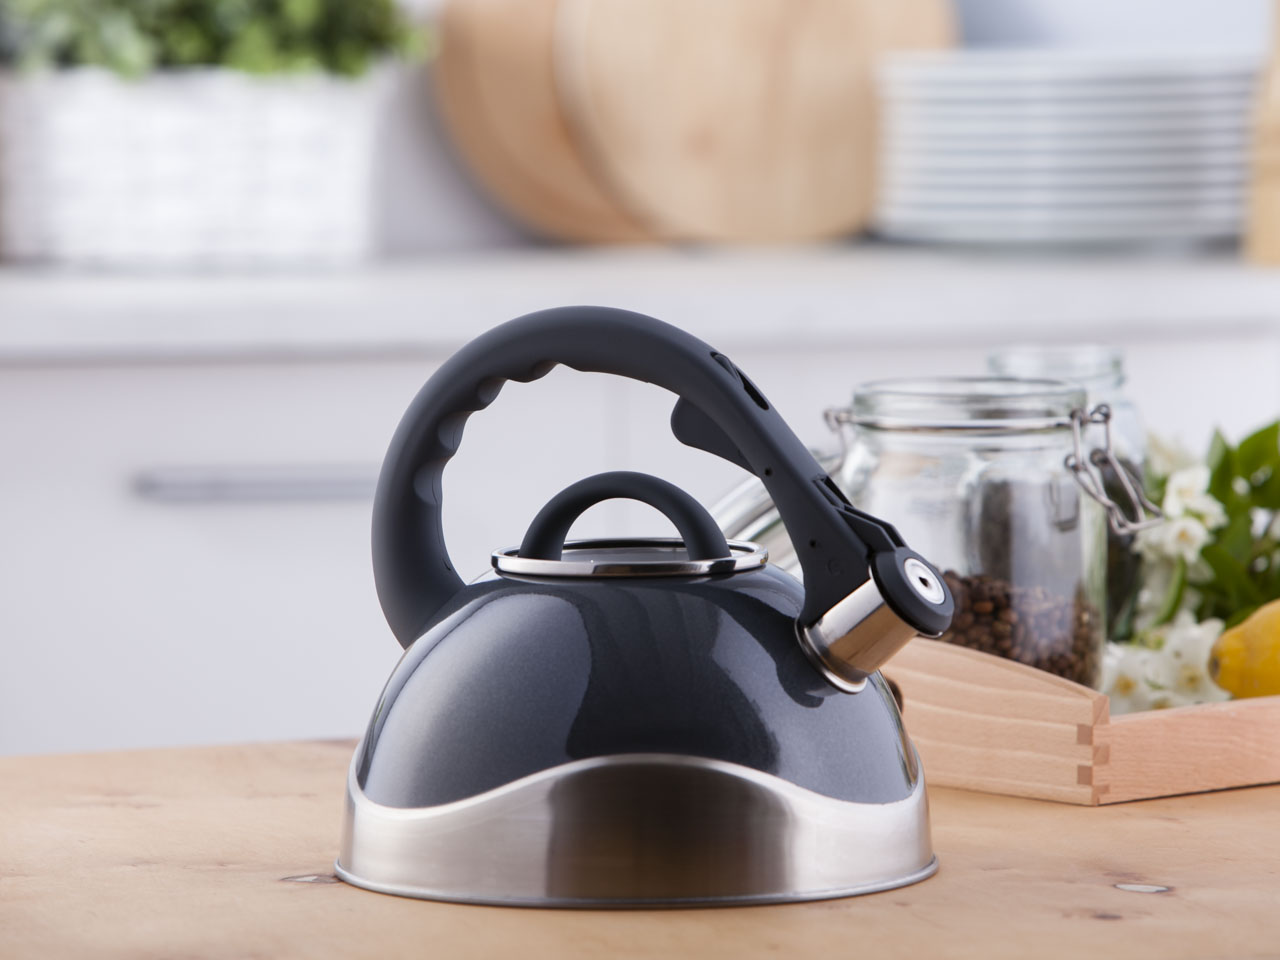 Stainless steel whistling kettle Tango grey 2,8l.